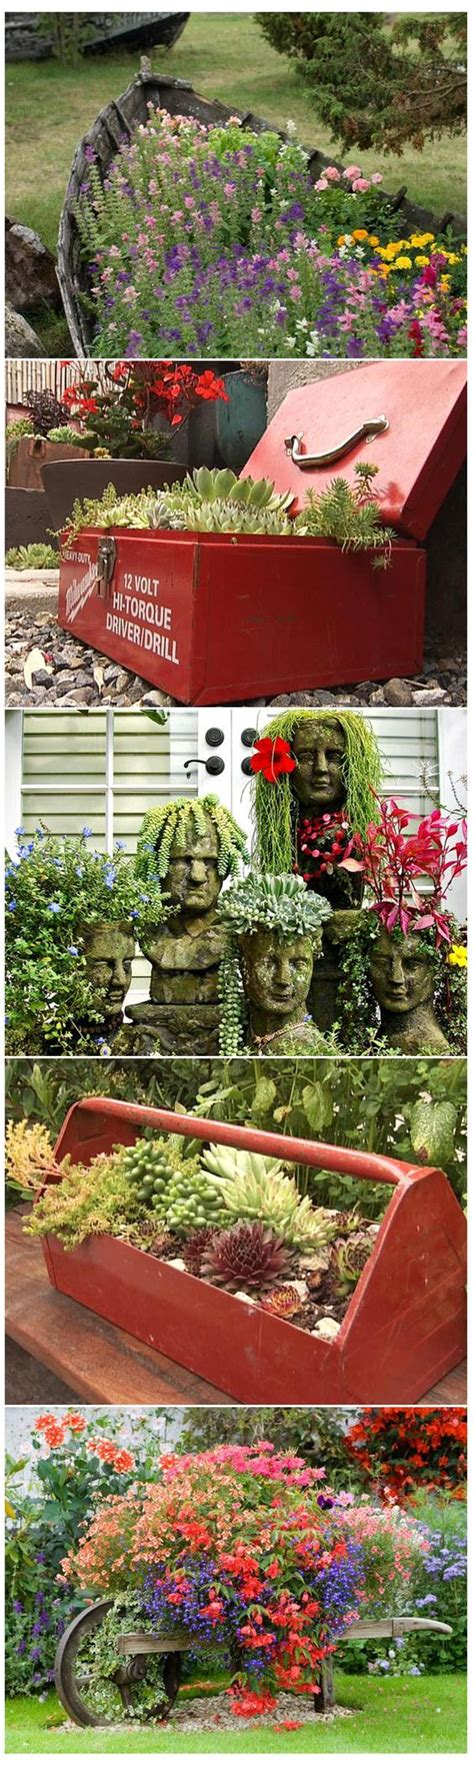 Upcycled Garden Ideas 13 And Upcycled Container Gardens Gardens The And Tool Box